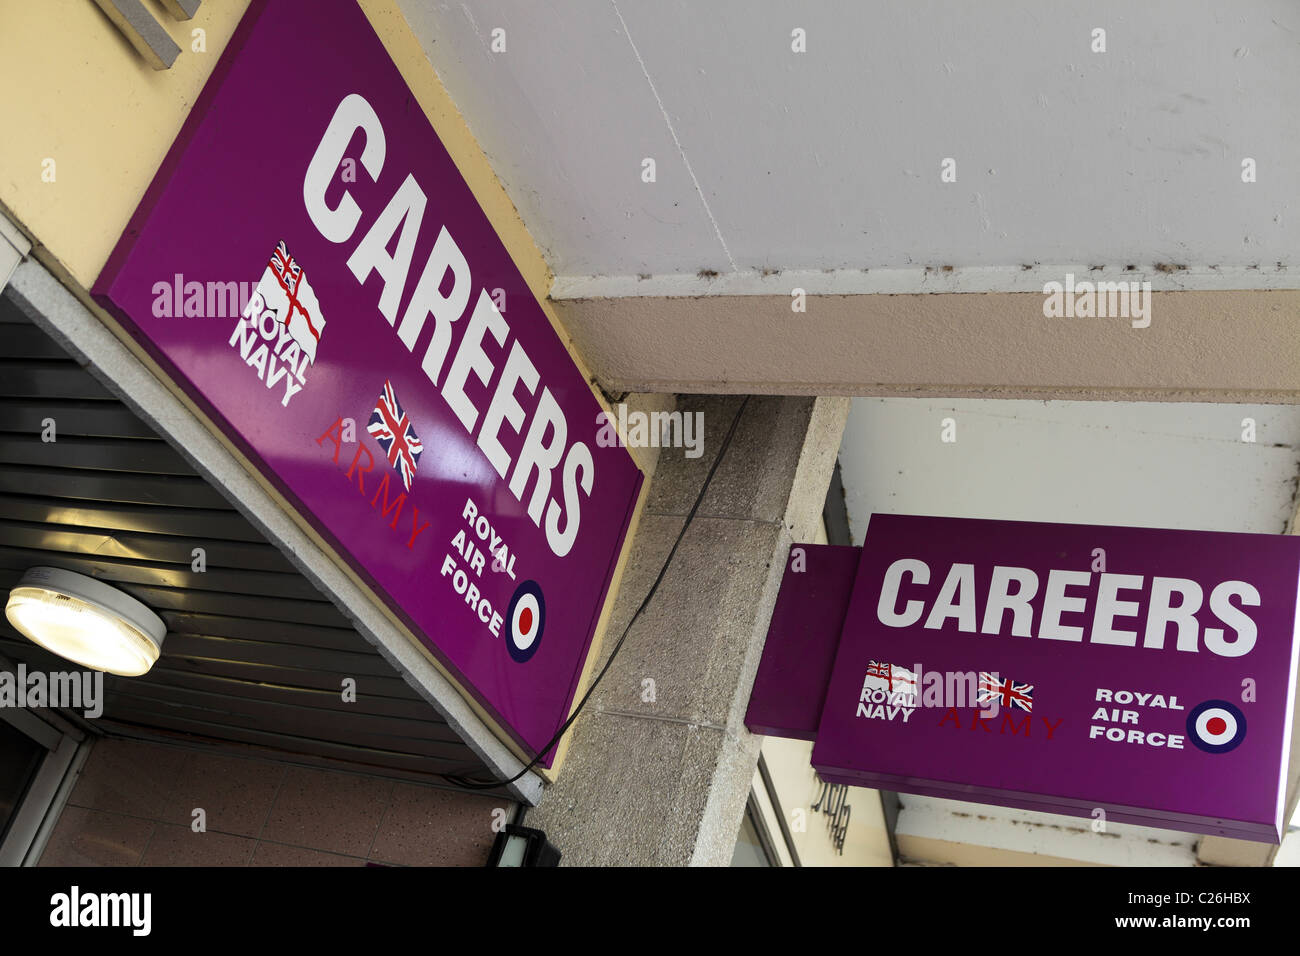 Careers Office for the British Armed forces. - Stock Image